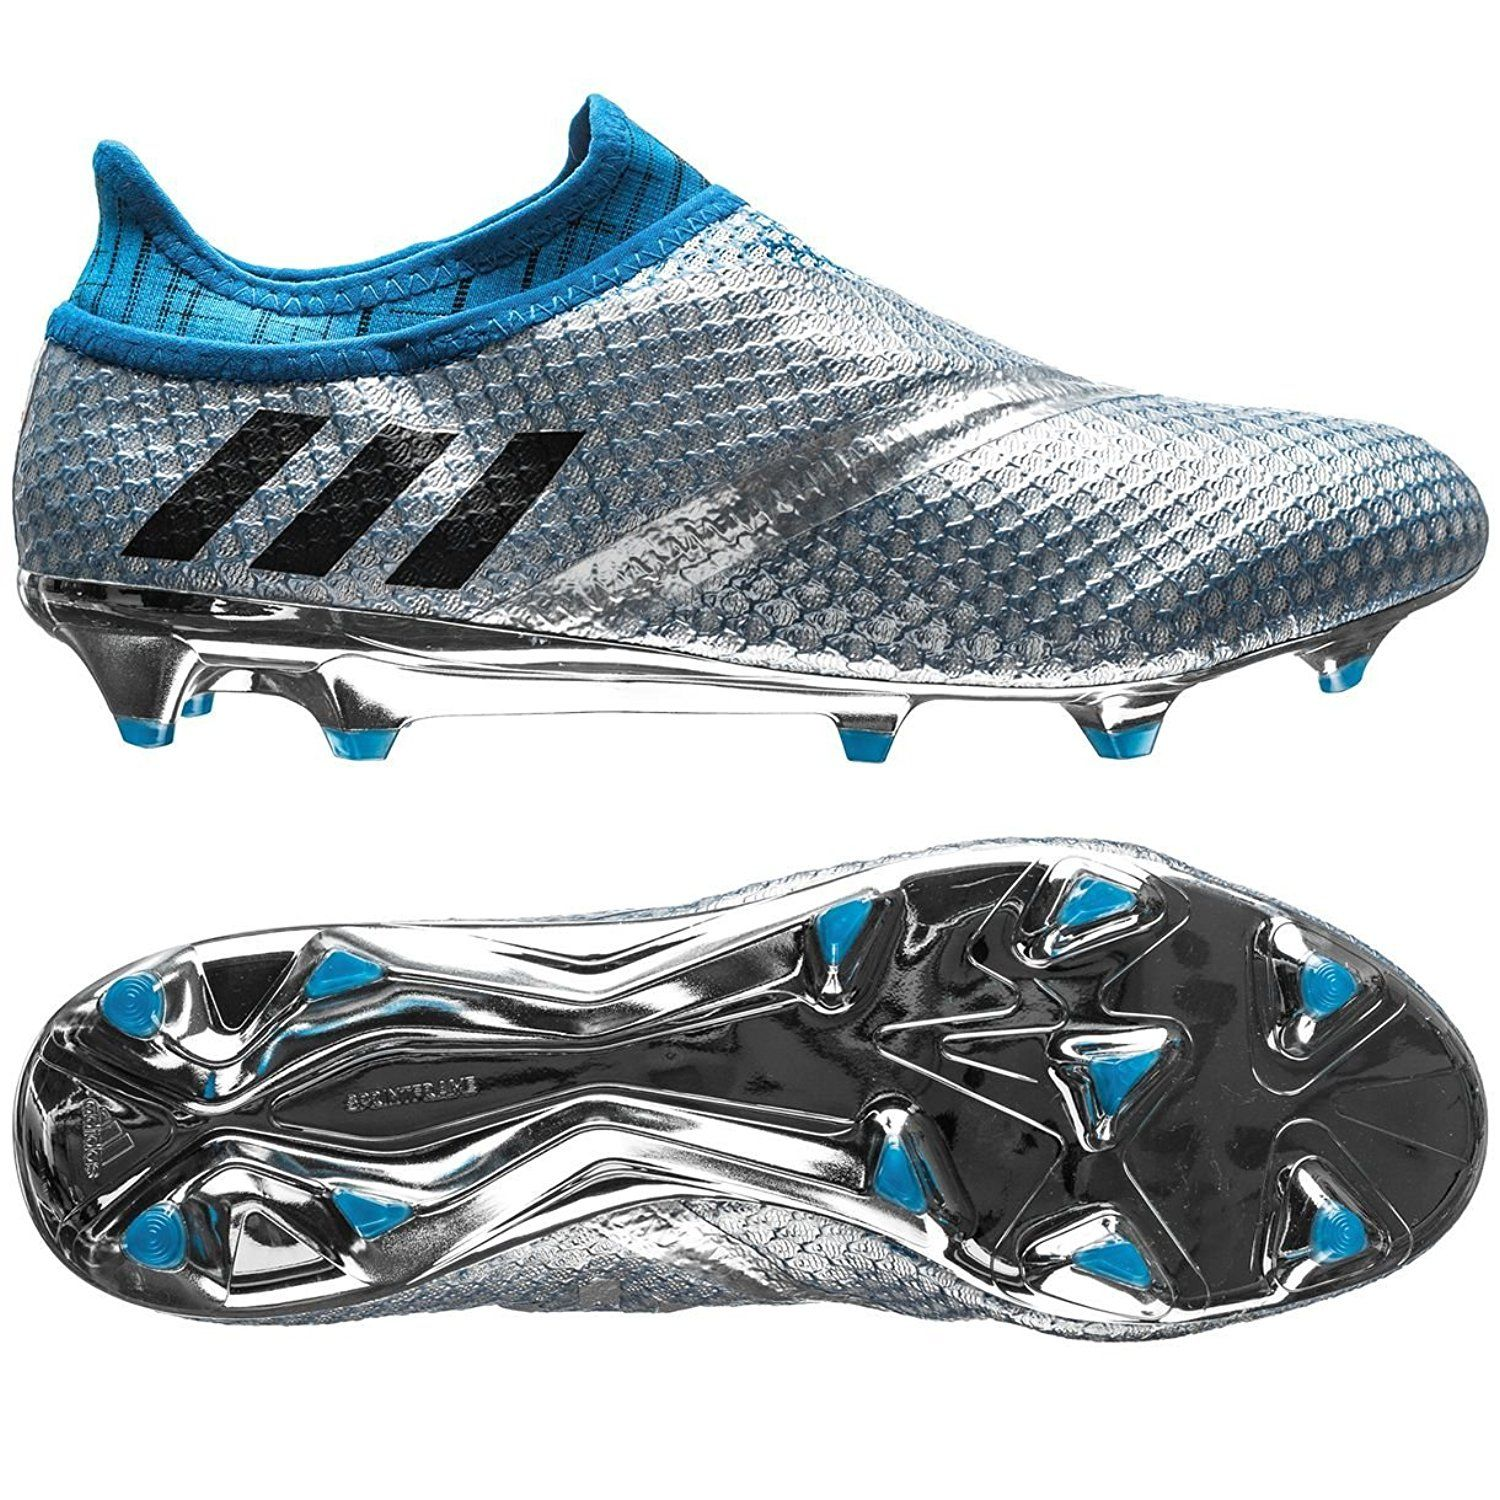 Adidas mens messi 16 pure agility fg soccer cleats 9ine